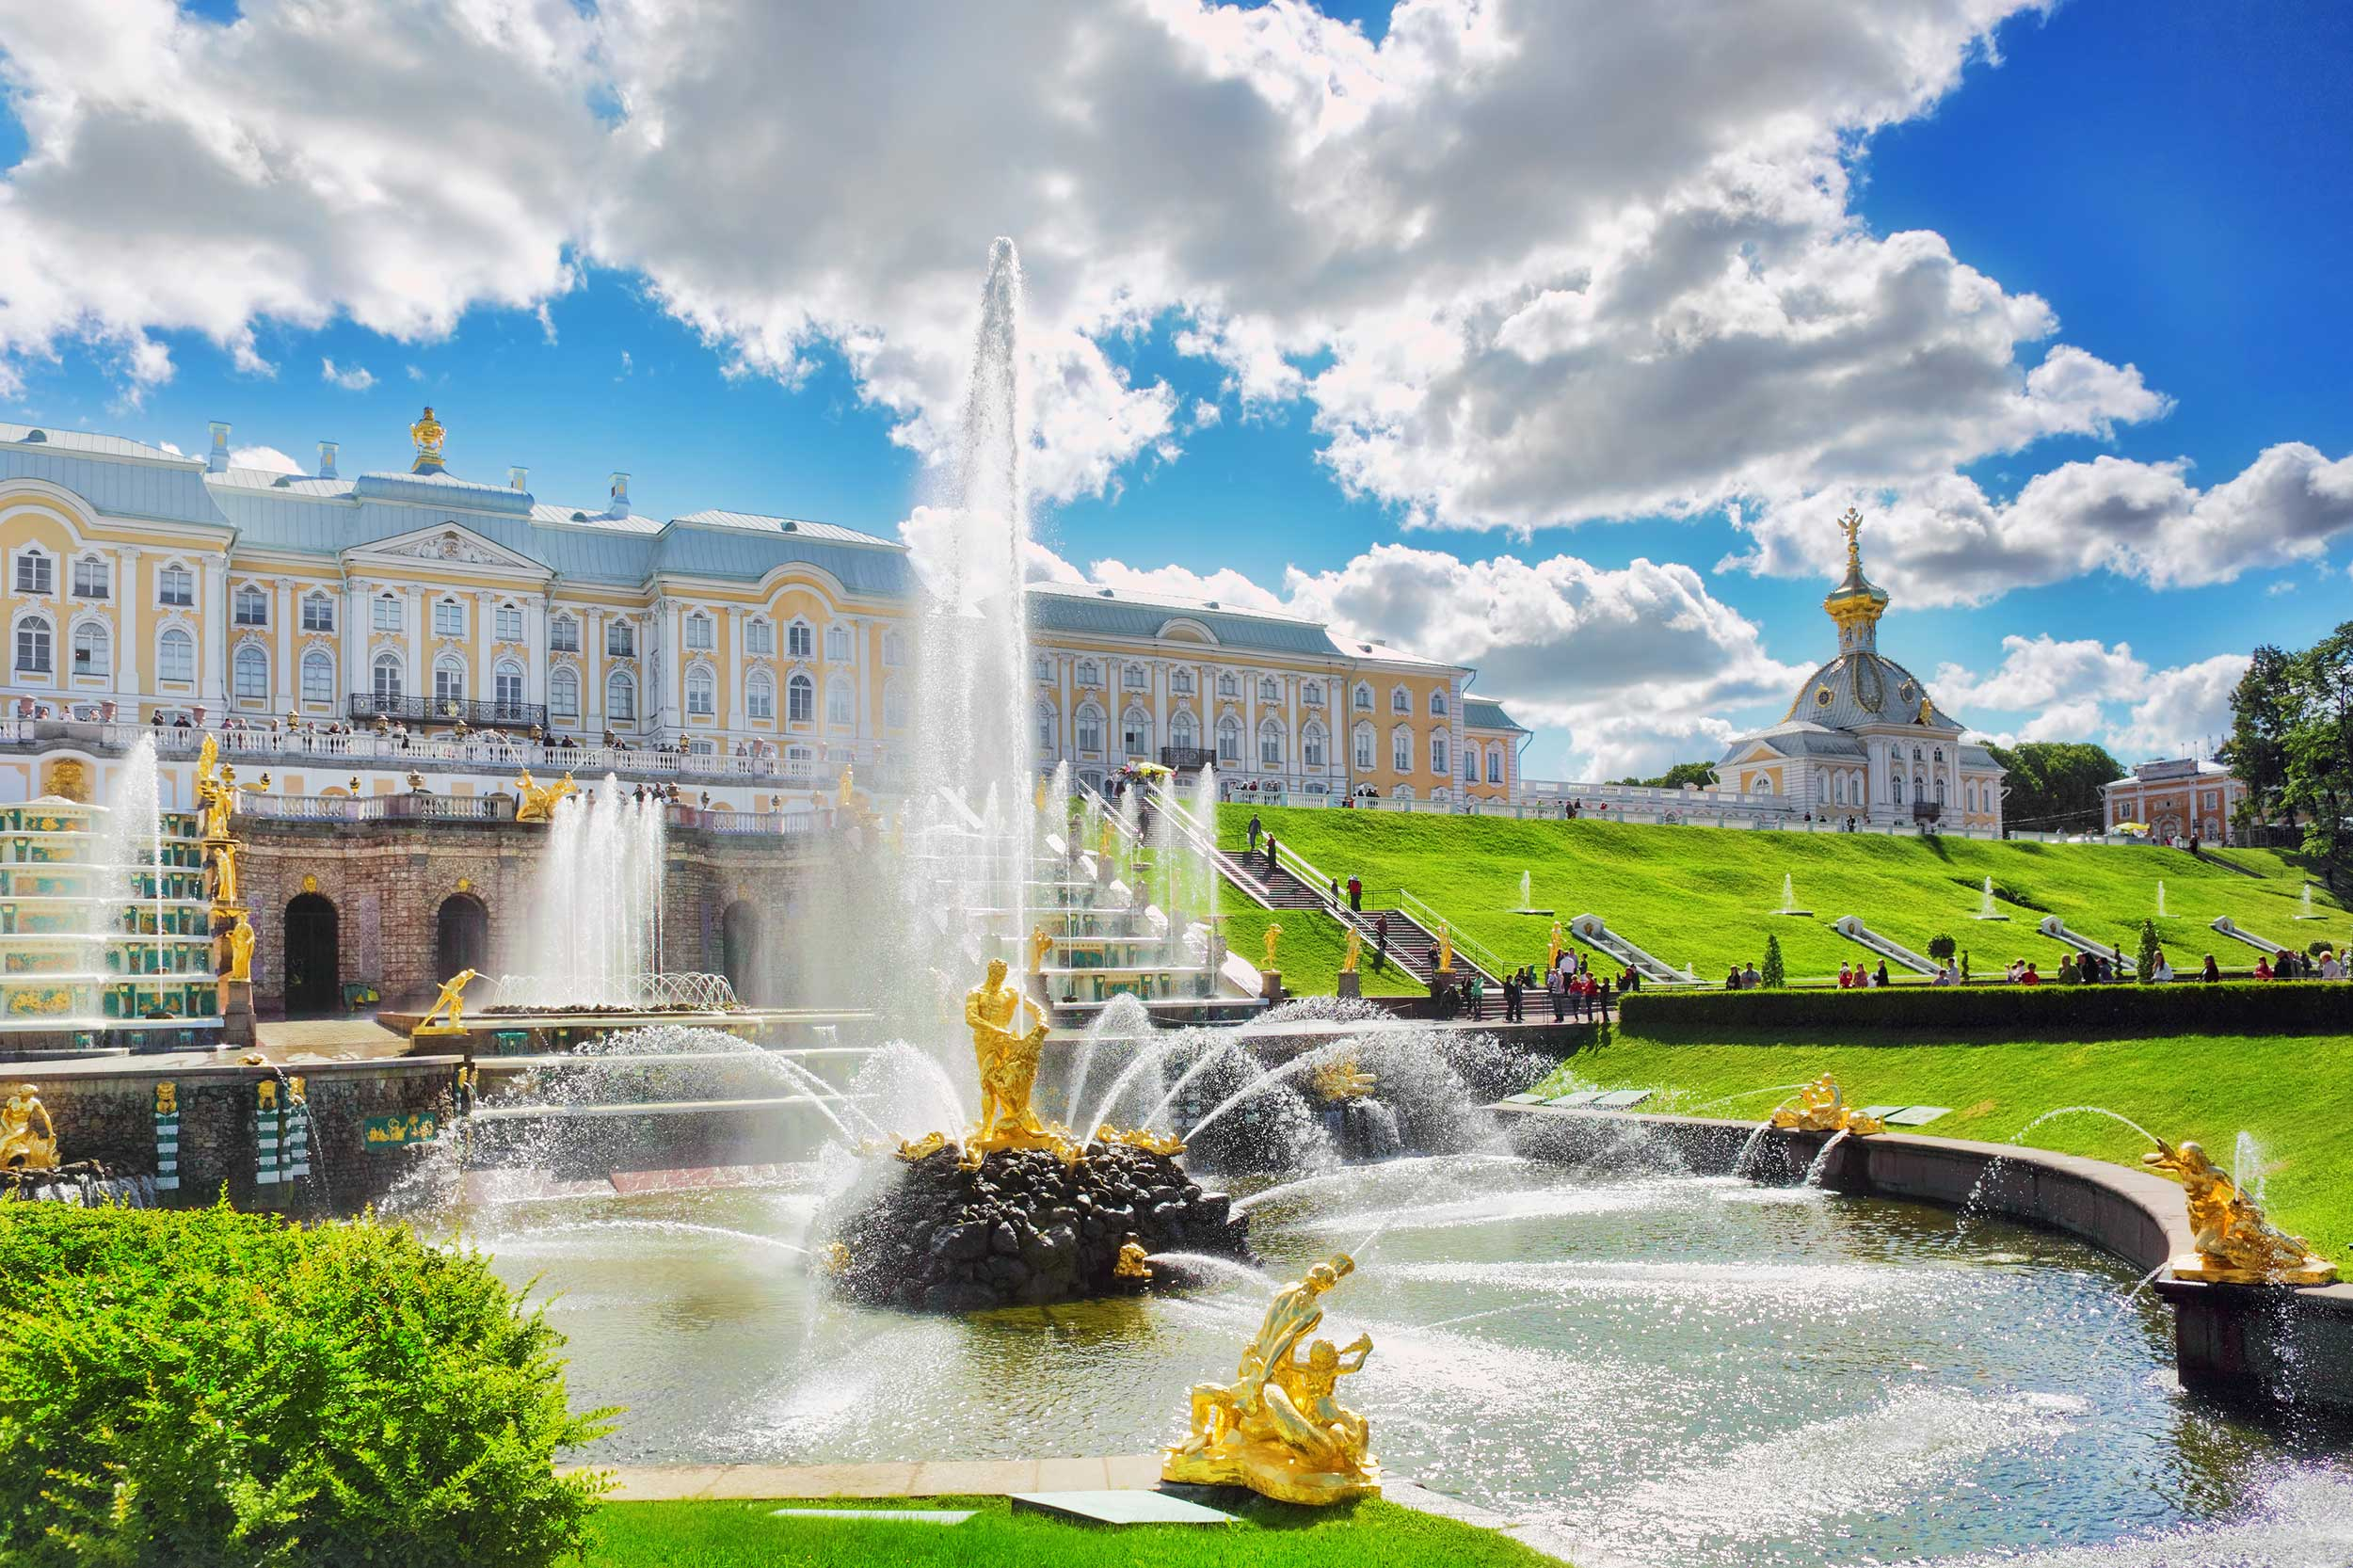 Peterhof palace and the Big cascade fountain complex. St.Petersburg 3 day itinerary